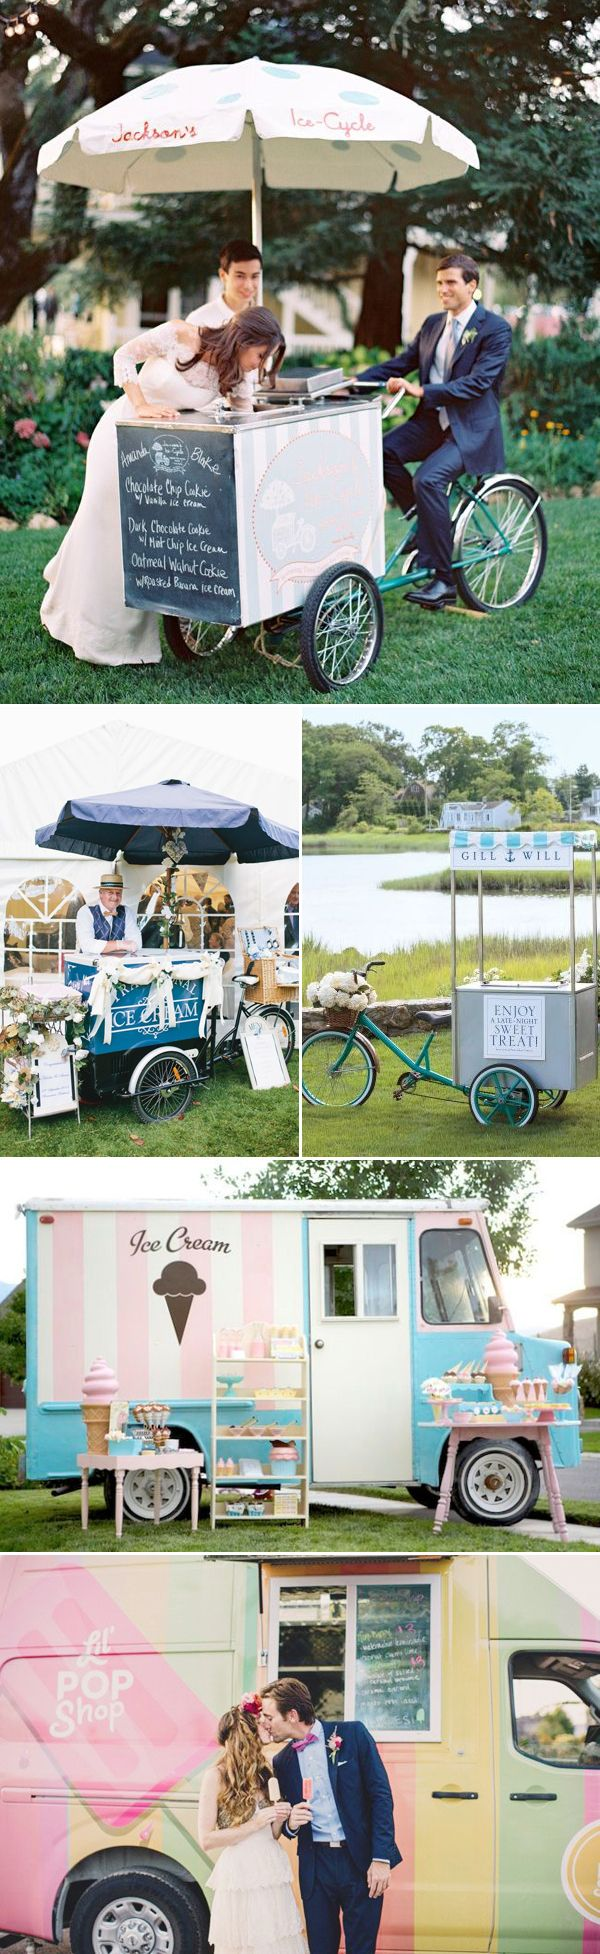 02-ice_cream_cart_truck                                                                                                                                                                                 More